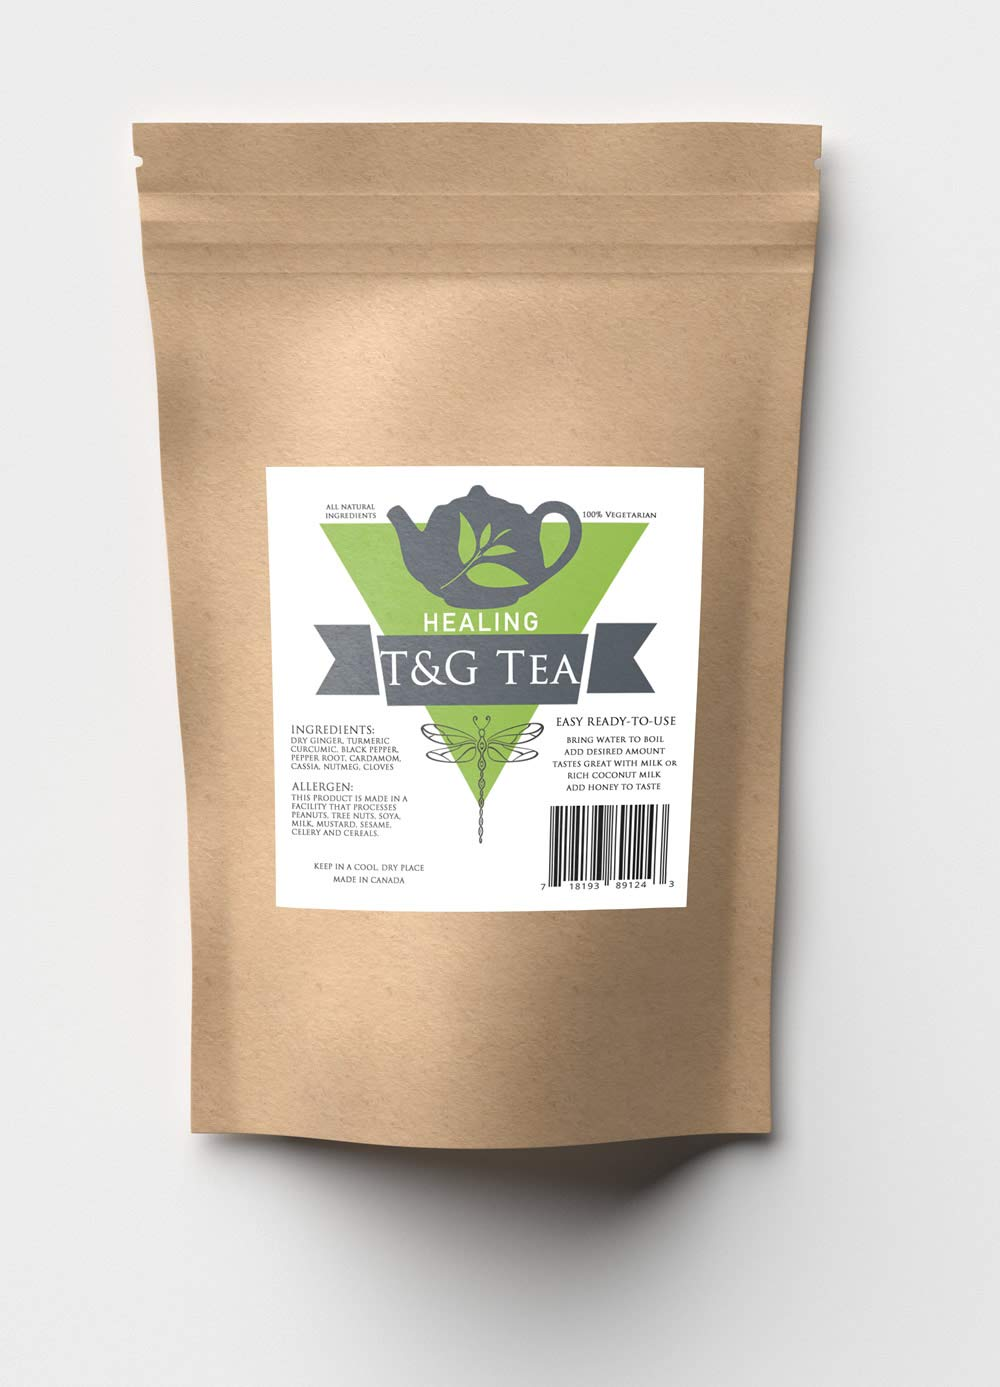 Amazon.com : T&G Healing Tea Joint Pain and Inflammation Relief : Grocery & Gourmet Food